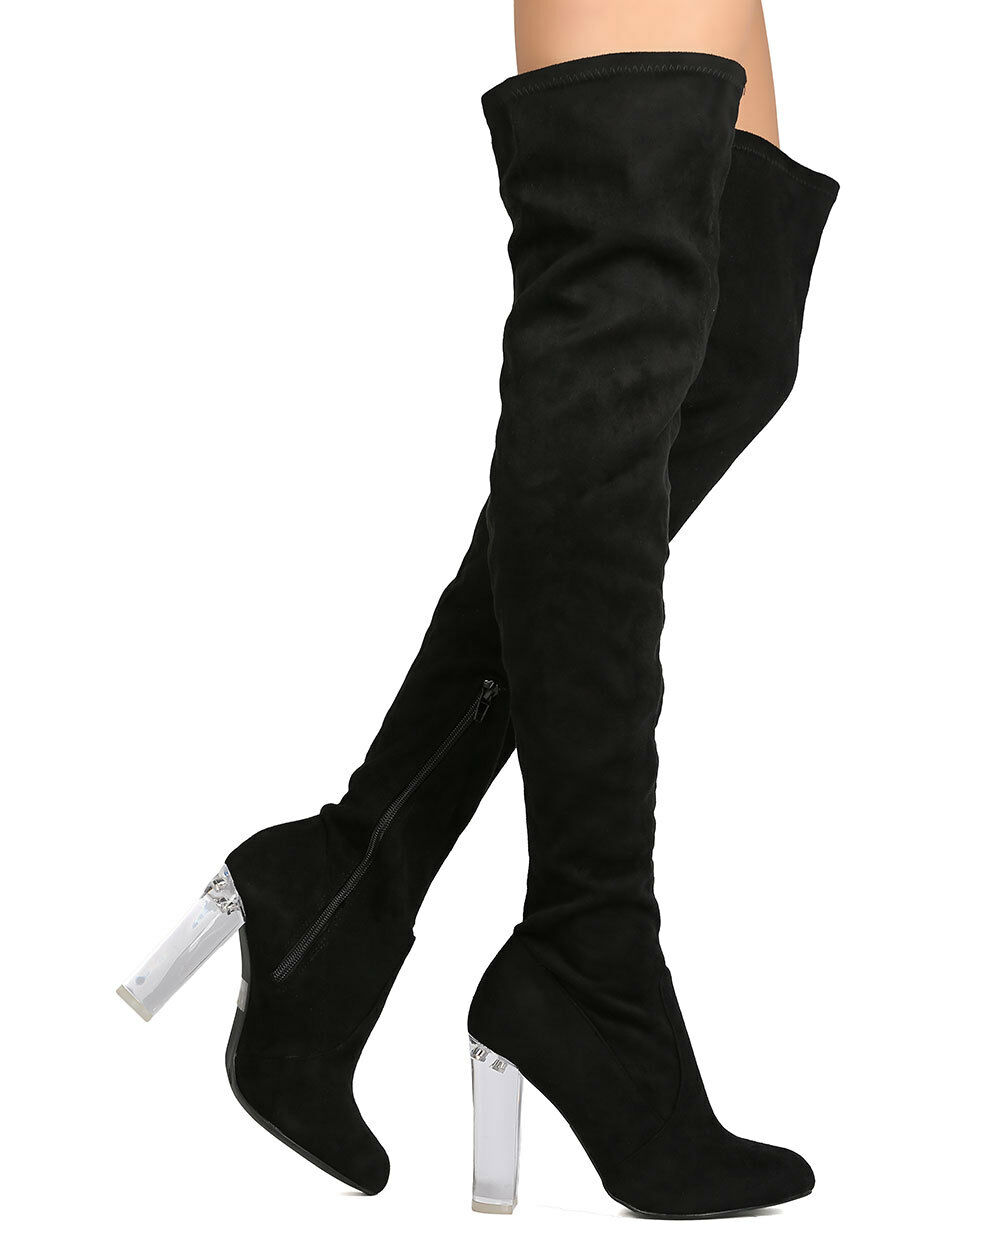 New Women Wild Diva Blossom-23 Faux Suede Thigh High Lucite Block Heel Boot